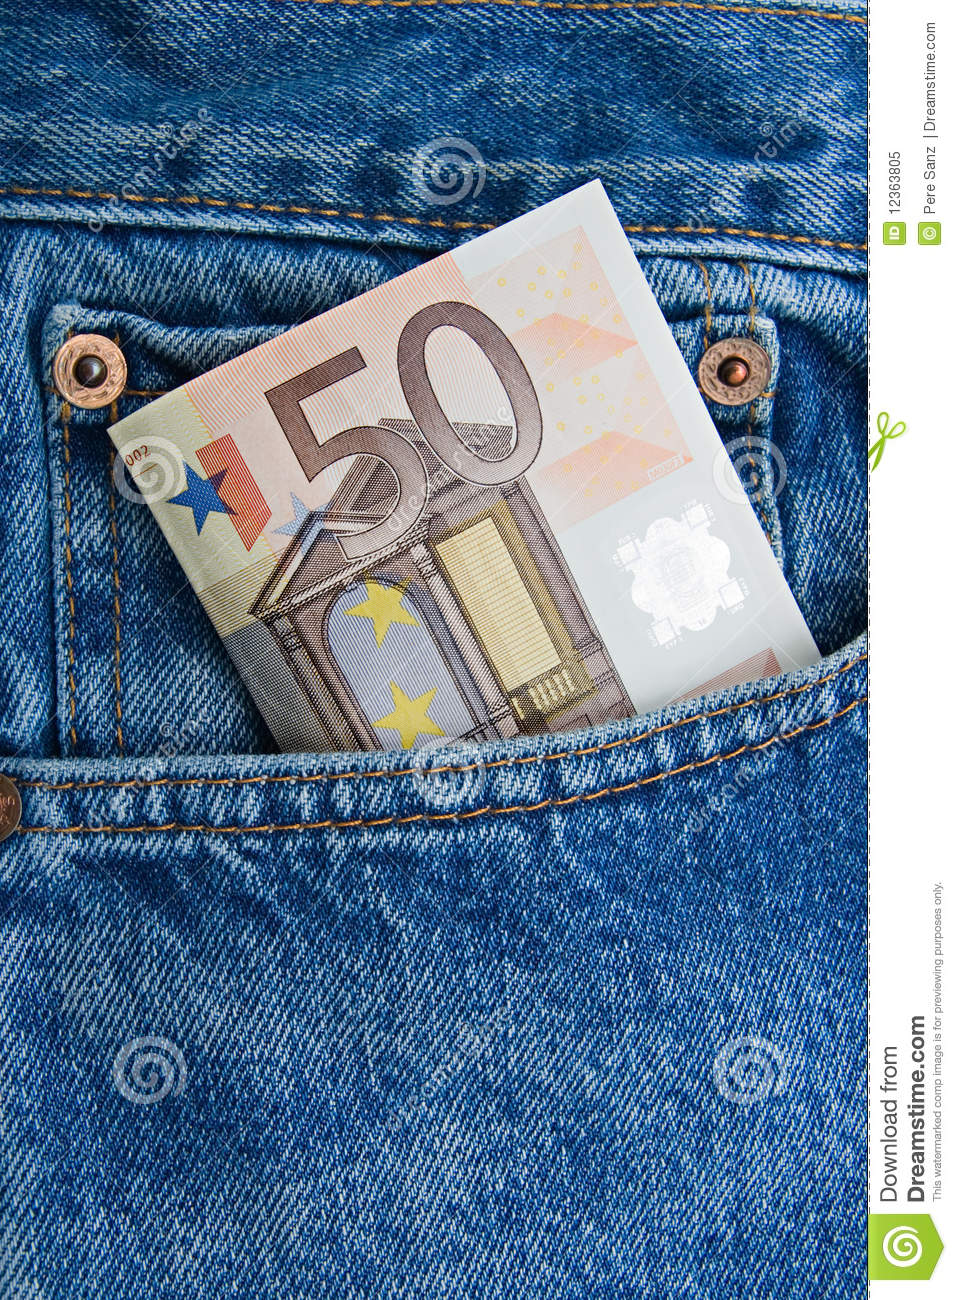 euro note in a blue jeans pocket royalty free stock photo image 12363805. Black Bedroom Furniture Sets. Home Design Ideas